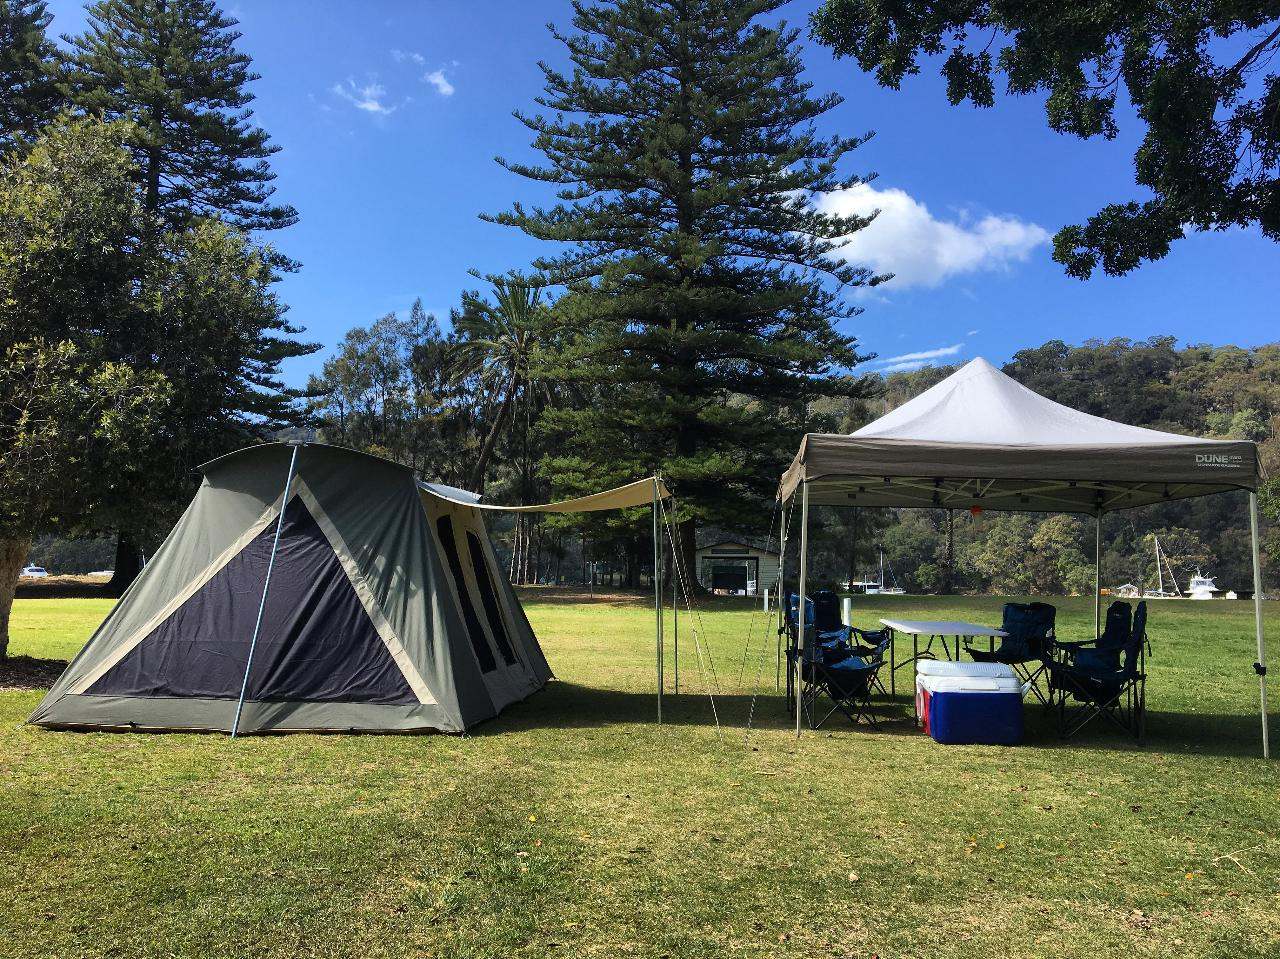 Sydney Deluxe Camping Experience - Basin Campsite Set Up Service